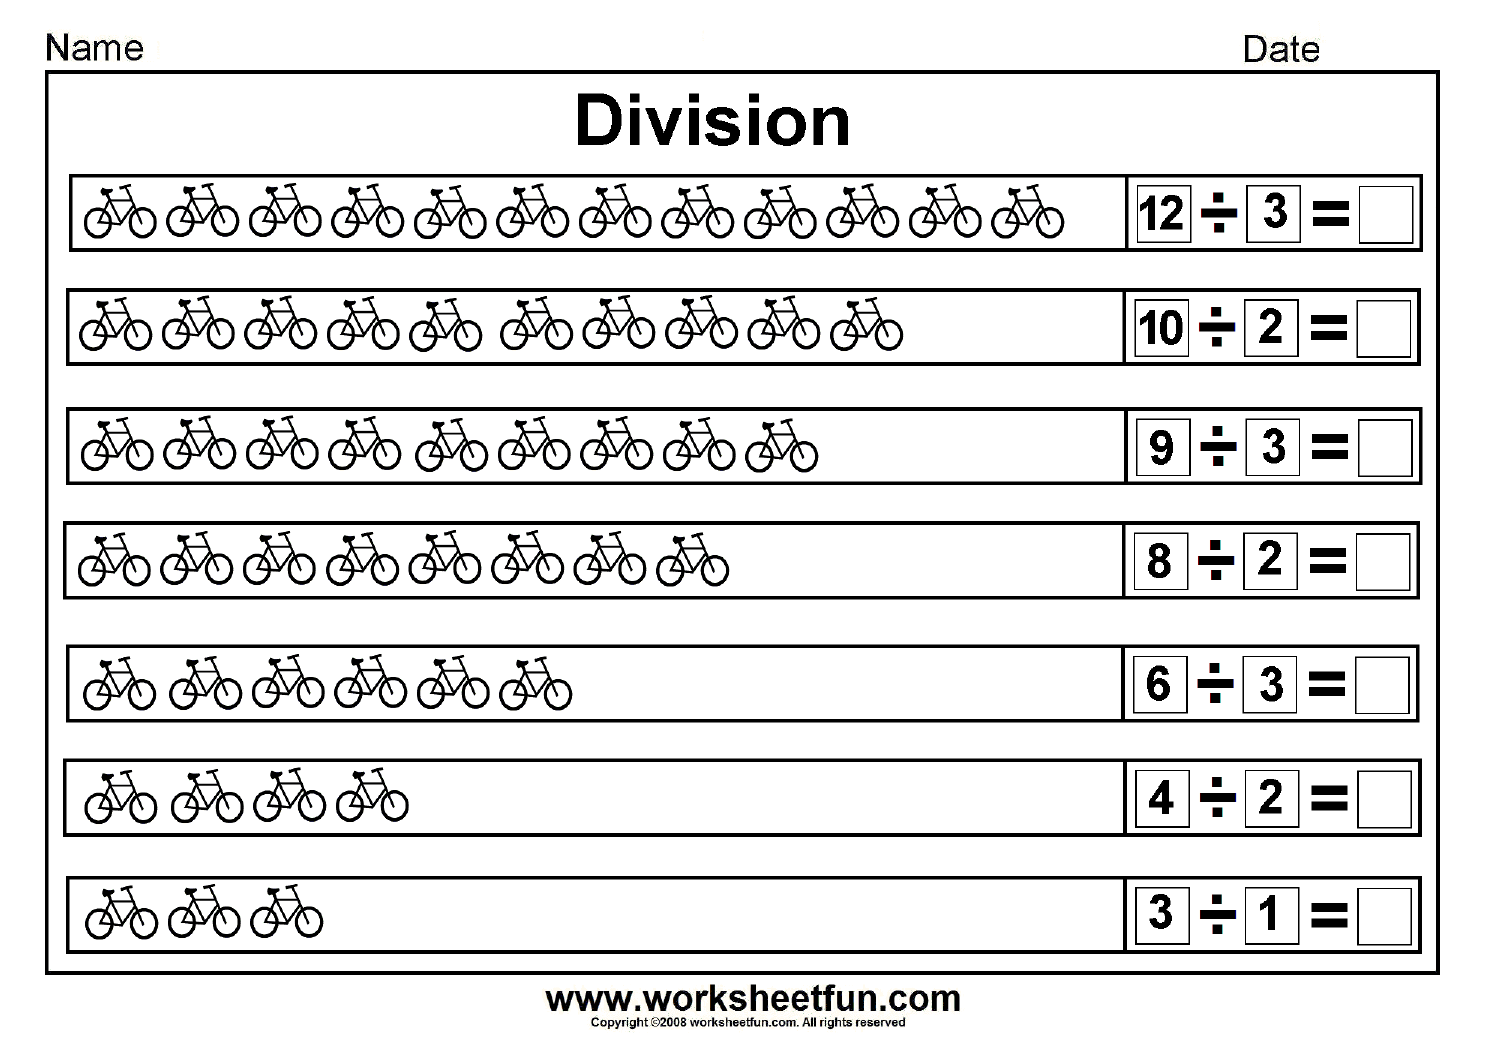 Division worksheets on Division